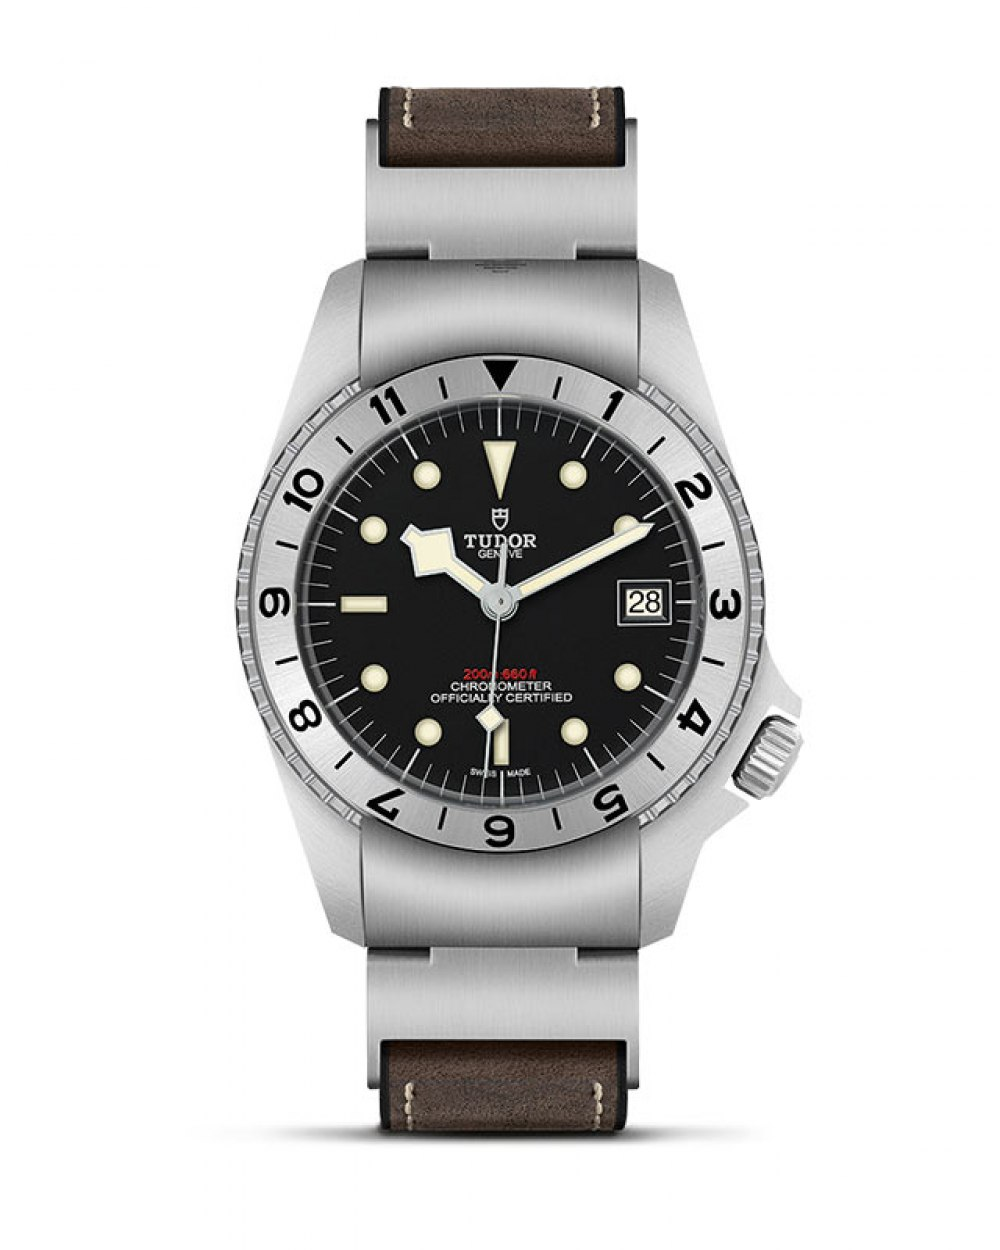 TUDOR Black Bay P01 M70150-0001